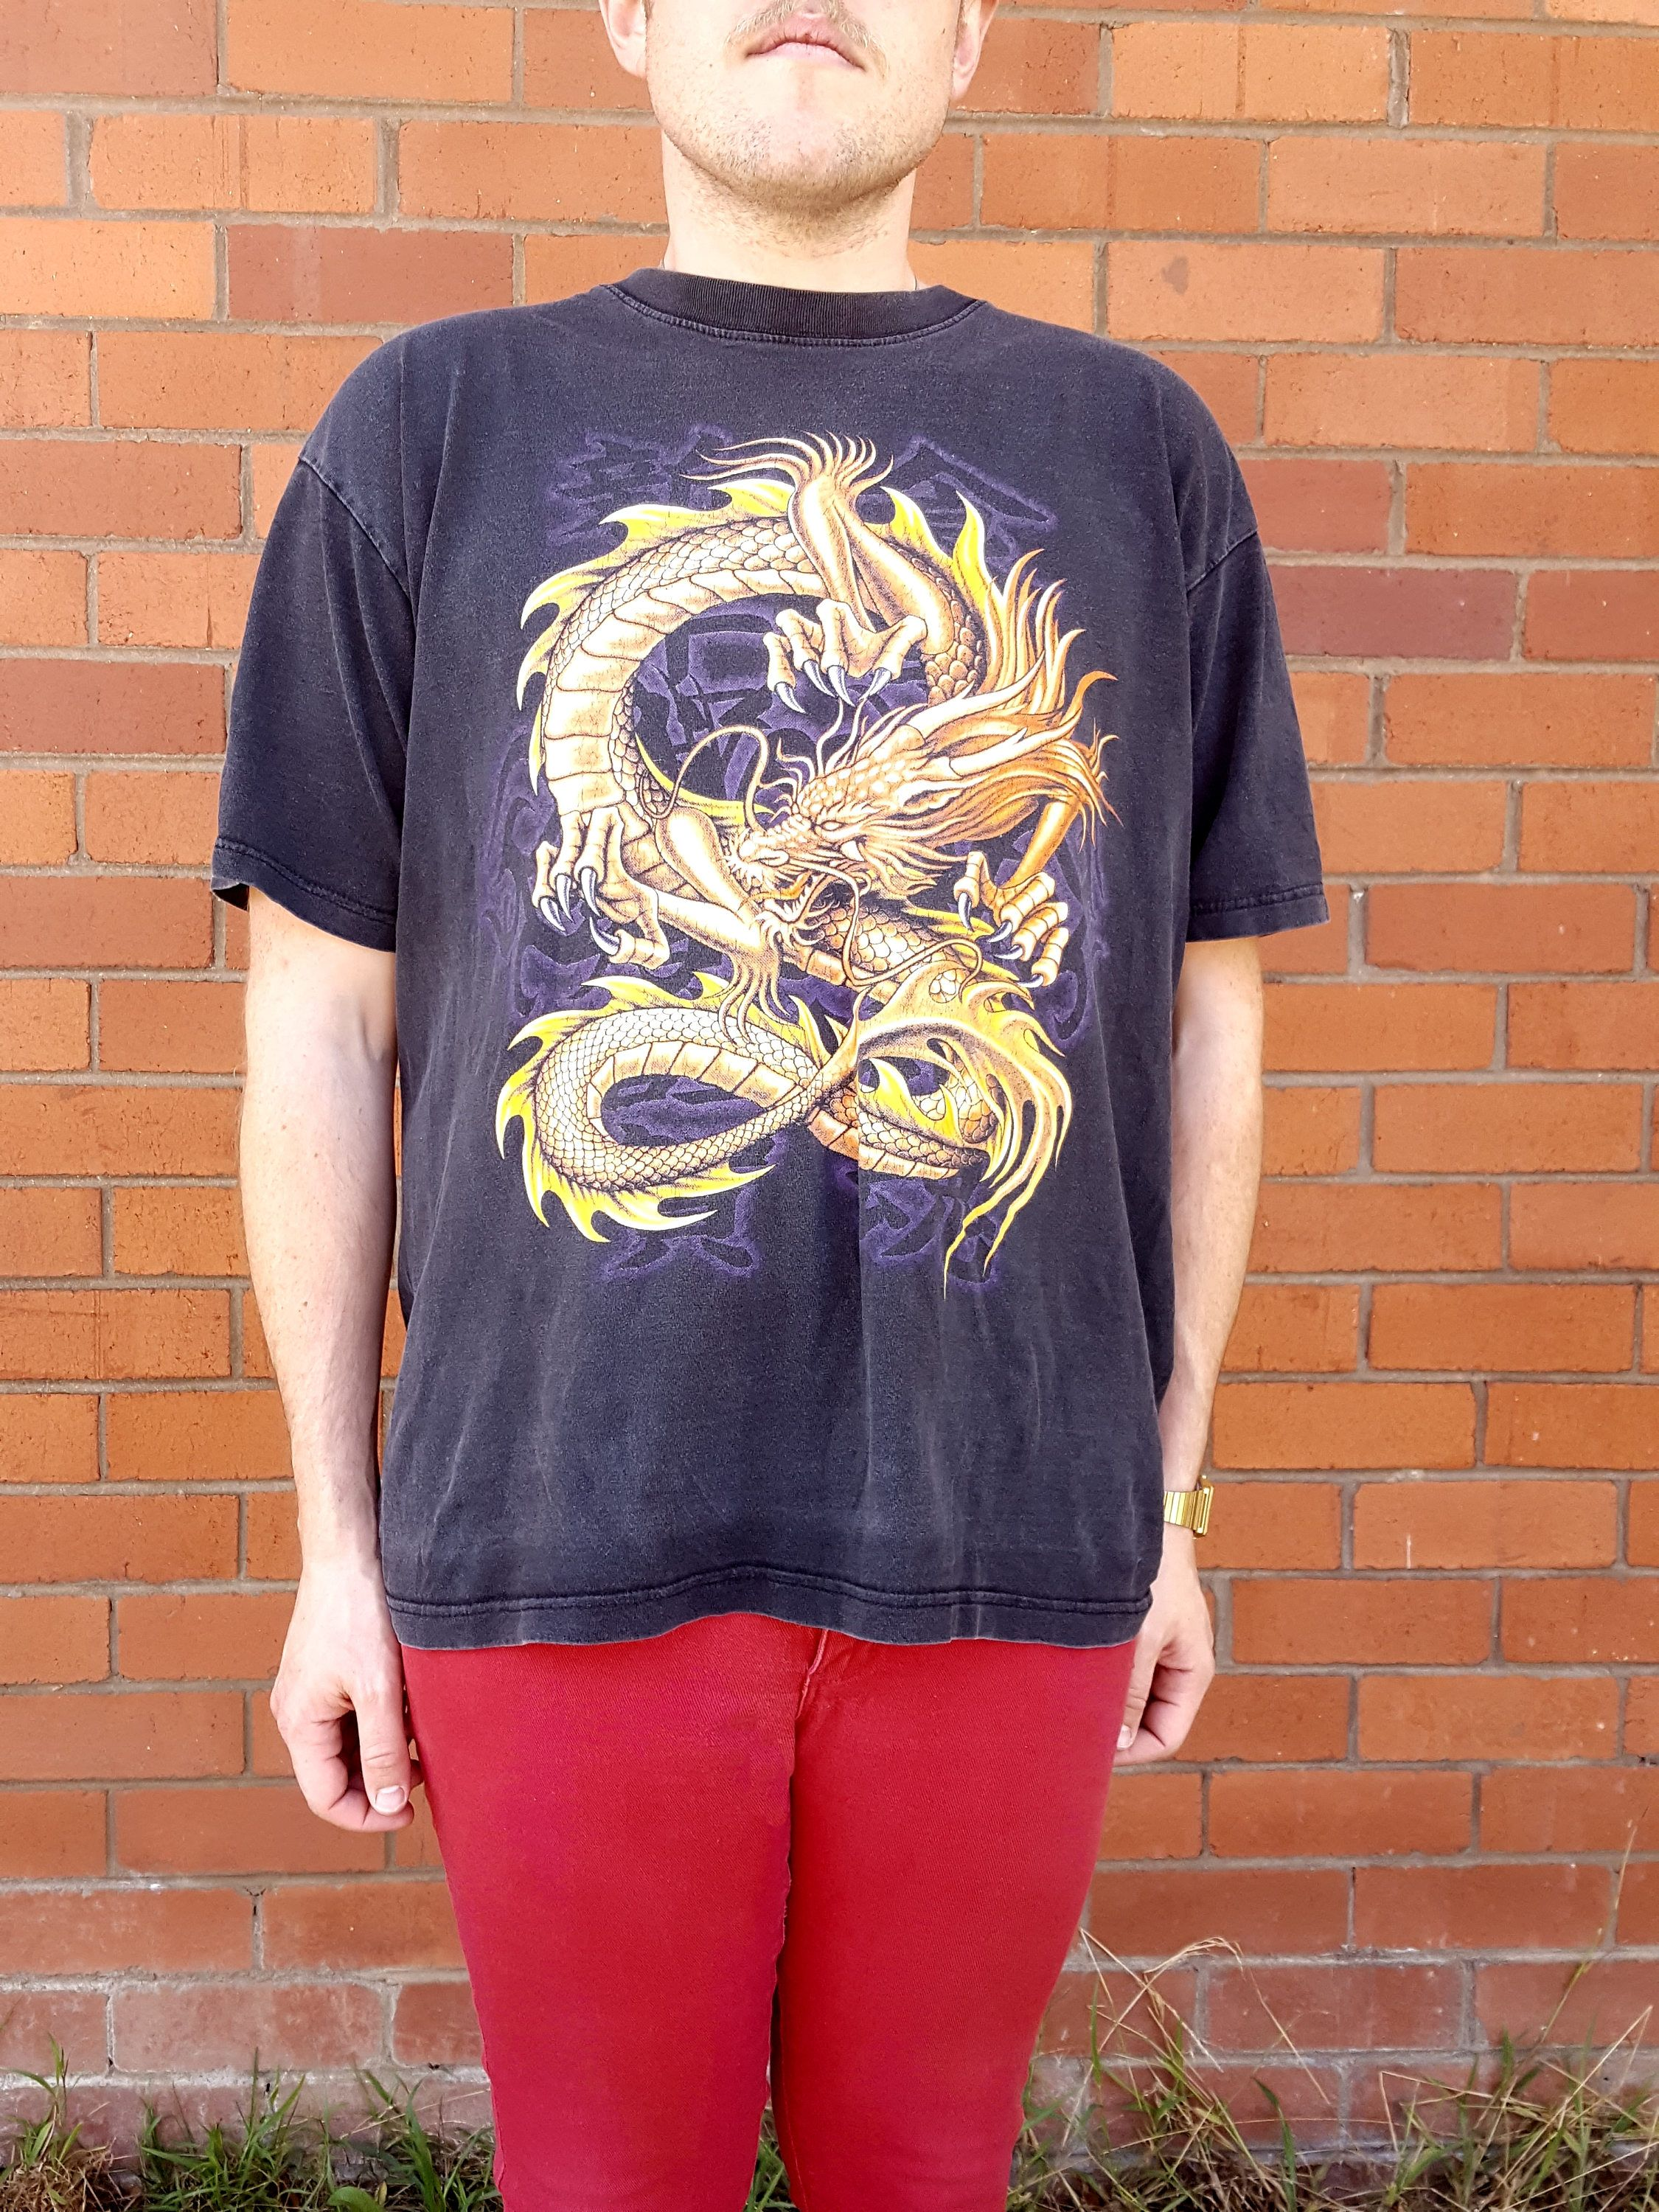 5e7ad4d68bac Vintage 90s Gold Dragon Tribal T Shirt / Distressed / Asian Design / Unisex  / Size Large / by NEONPOINT on Etsy